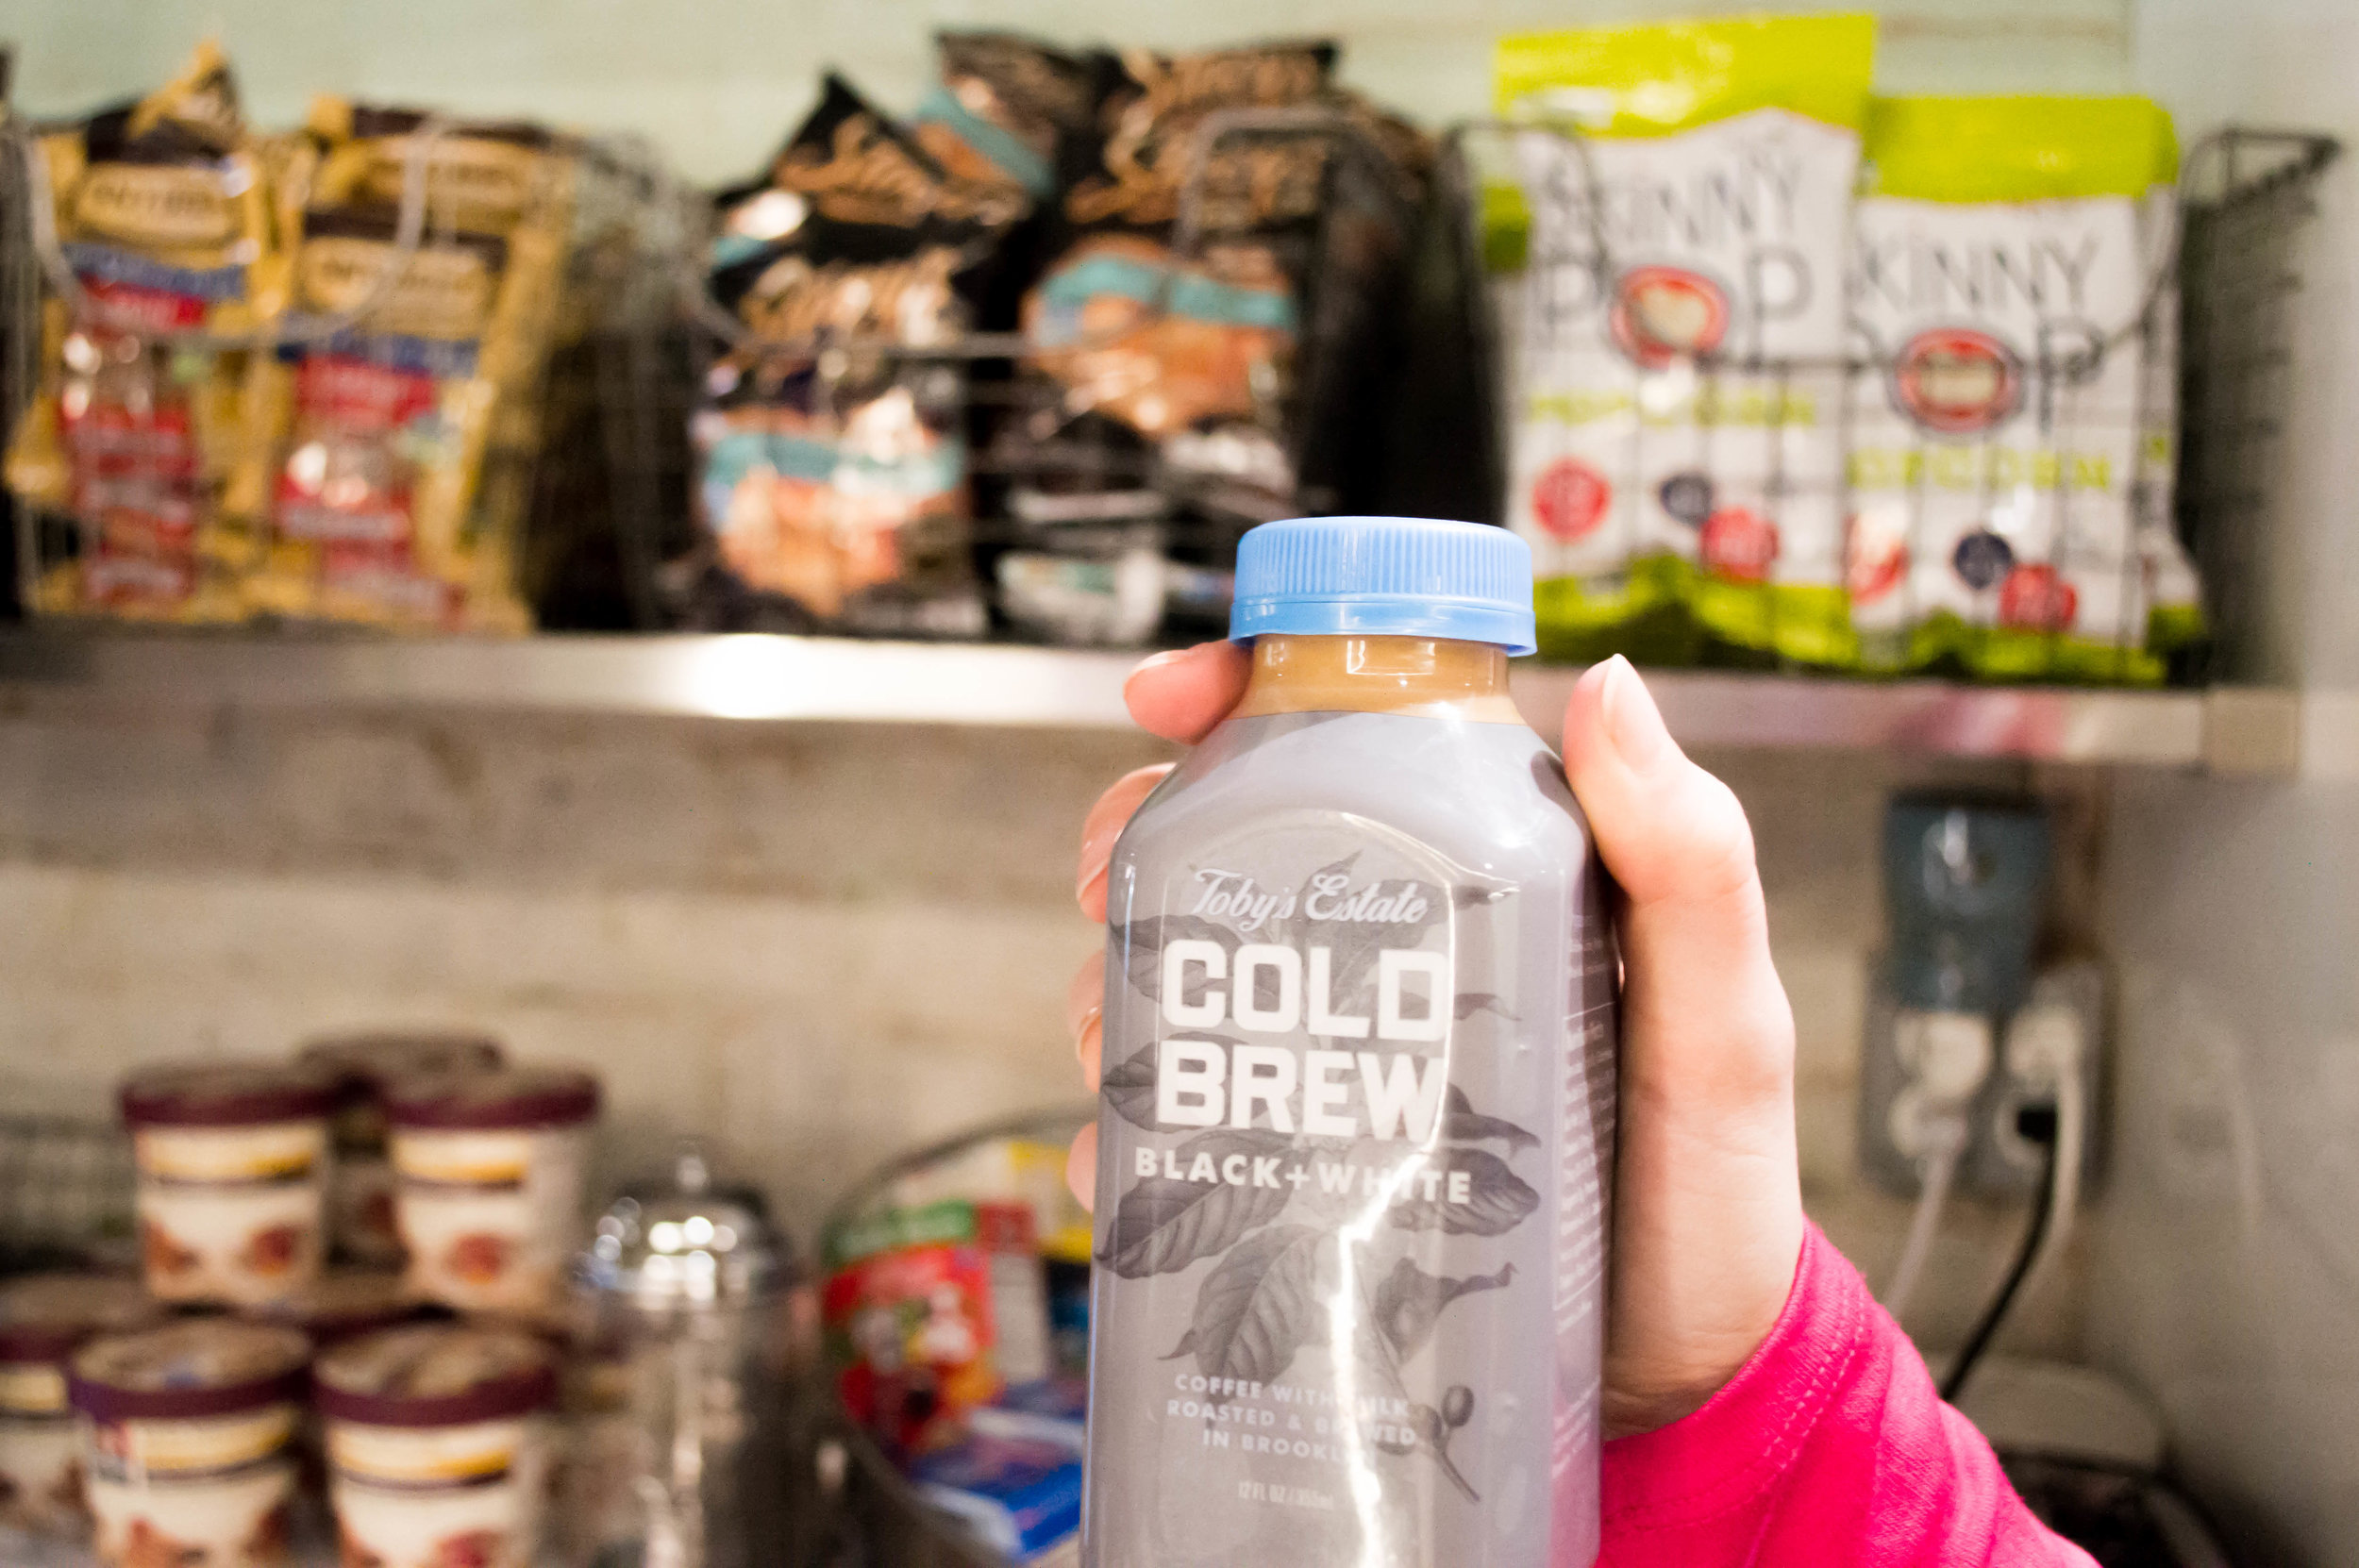 Bottle of cold brew coffee being held up in front of shelves of snacks